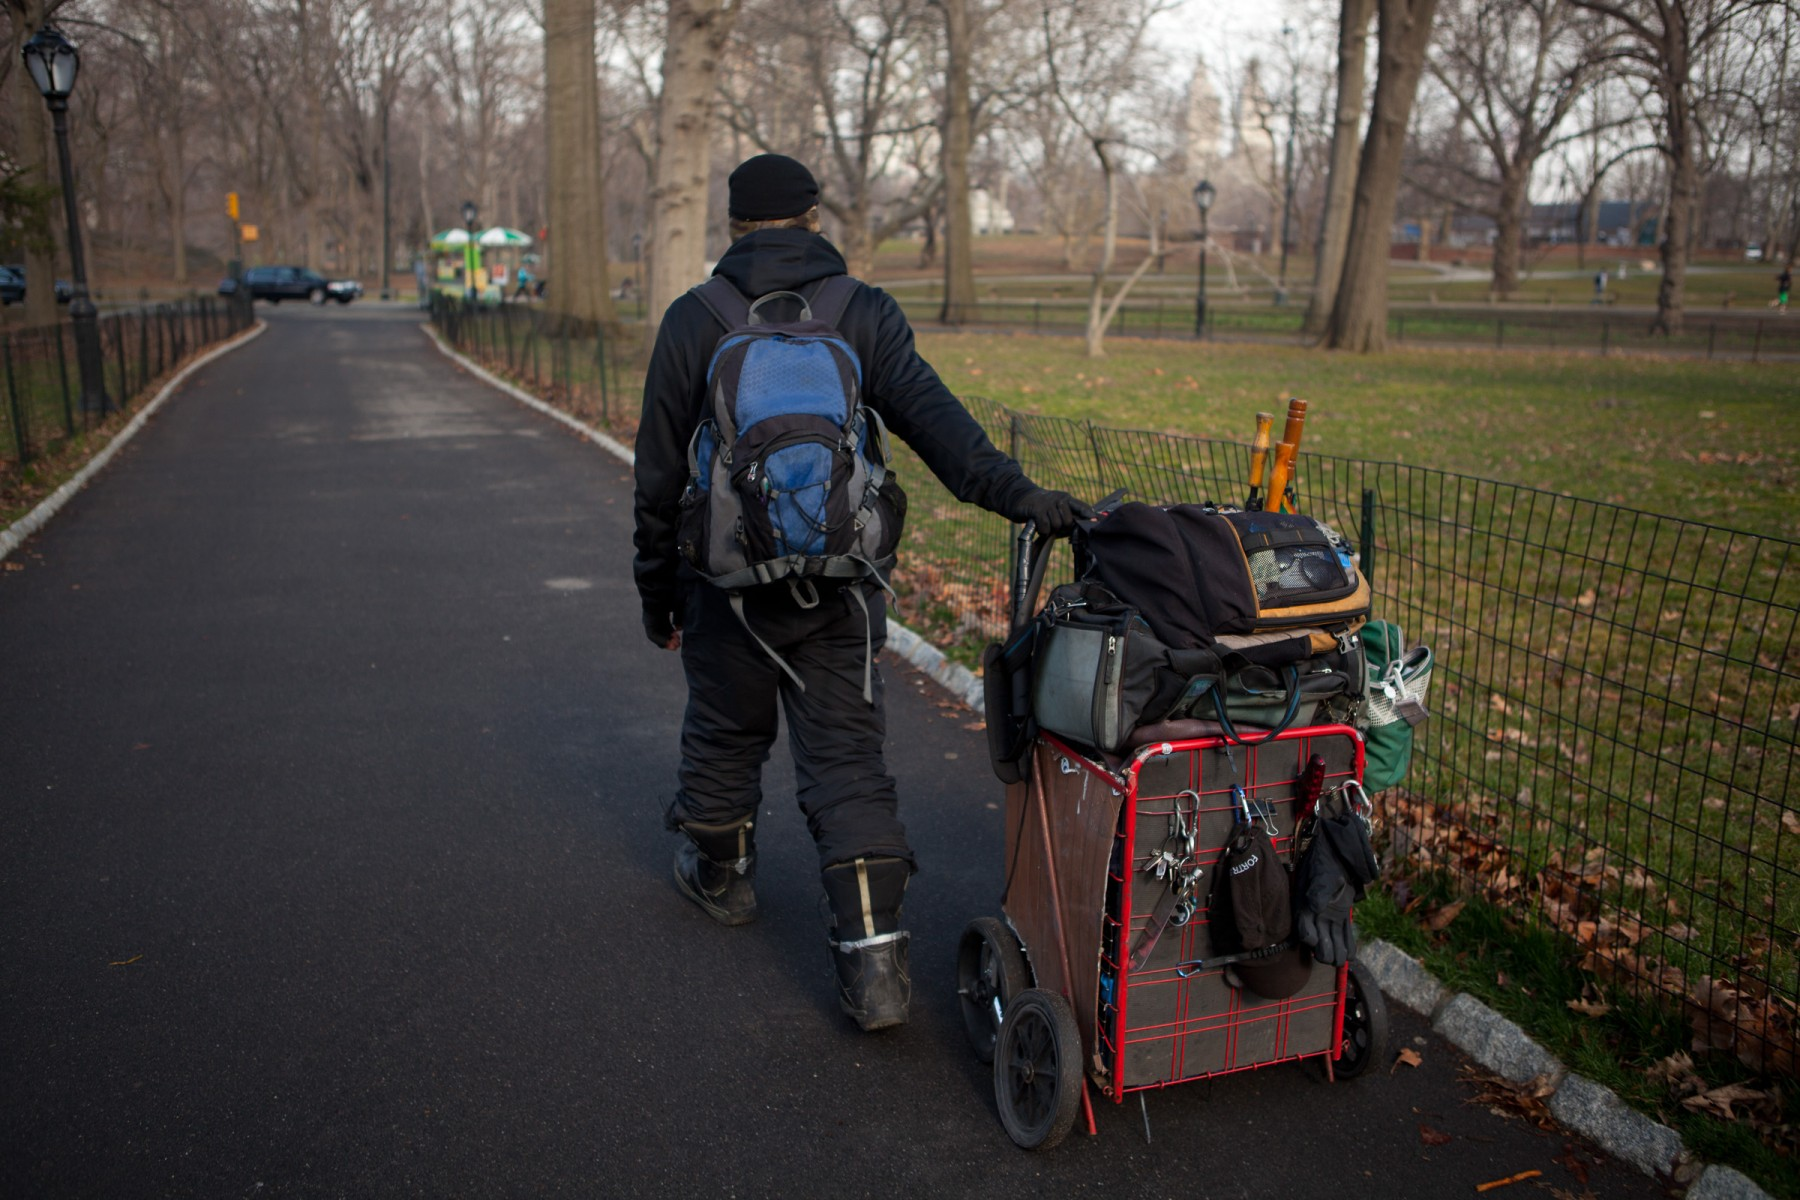 Living rough in central park New York City.